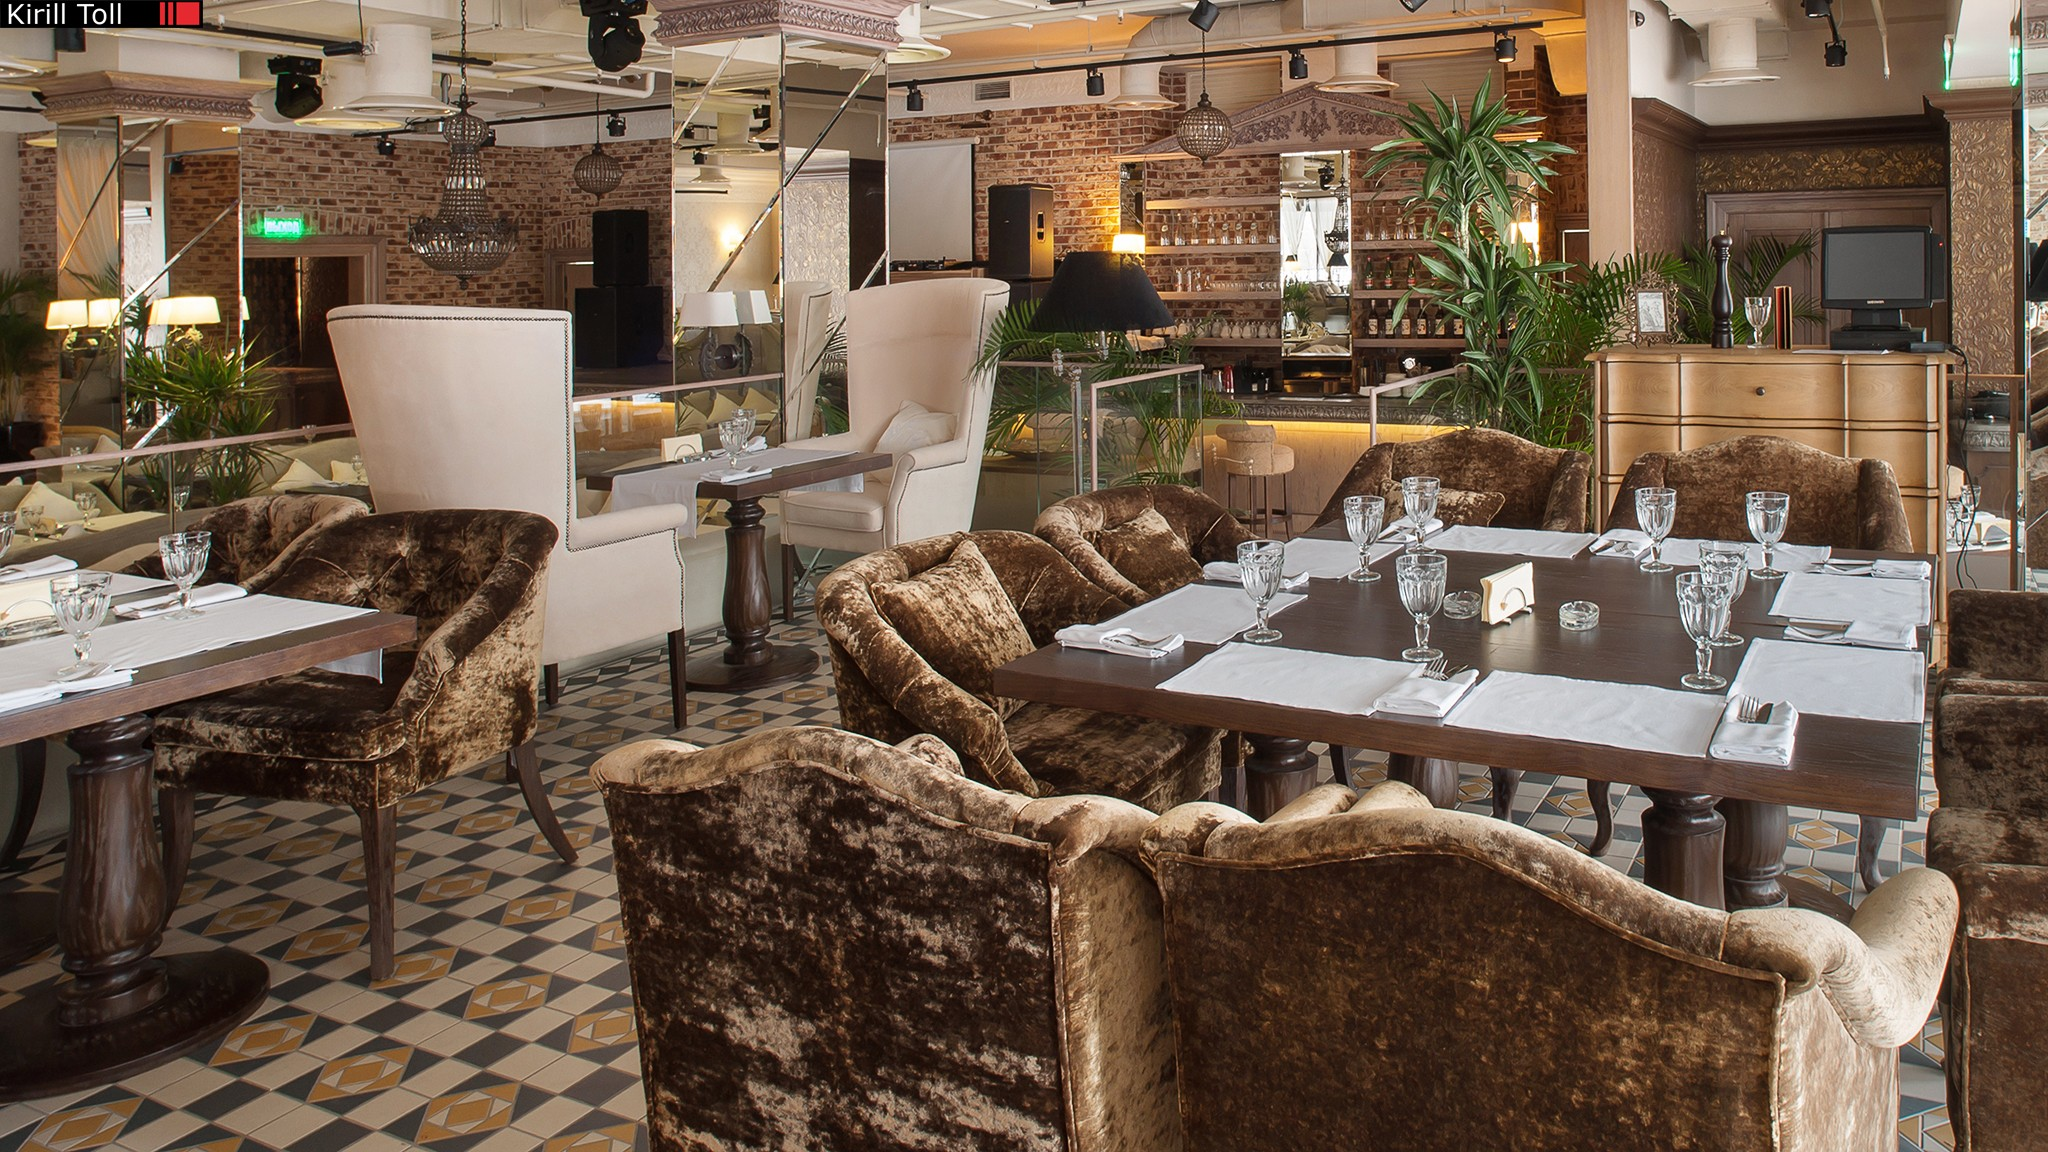 Photos of the interior of the restaurant for the catalog and the site